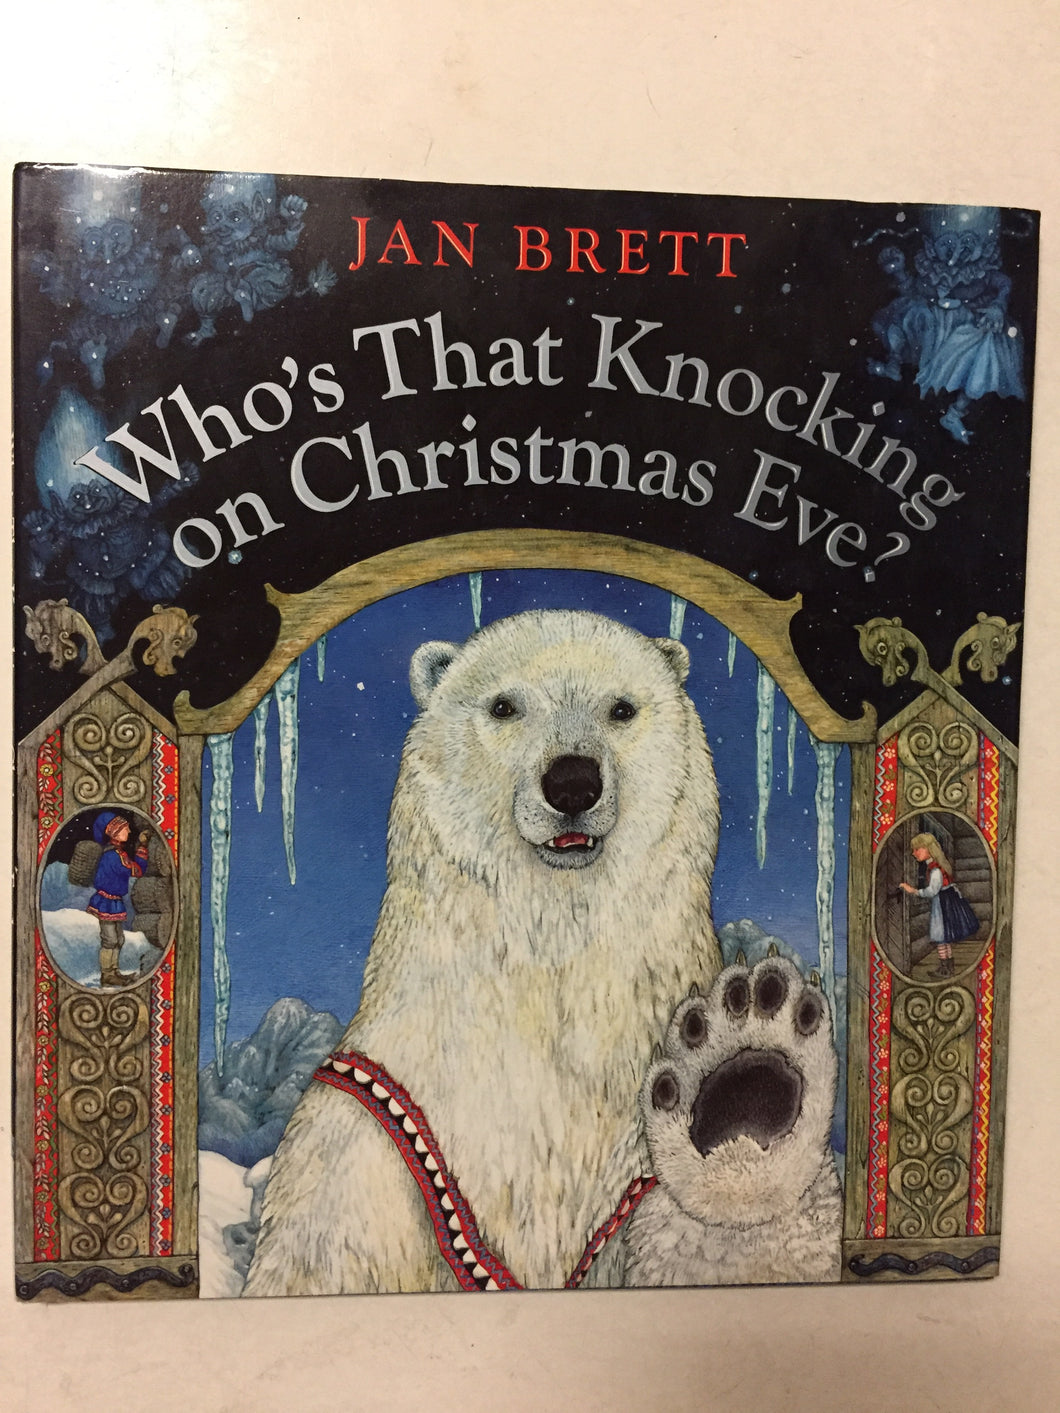 Who's That Knocking on Christmas Eve? - Slickcatbooks